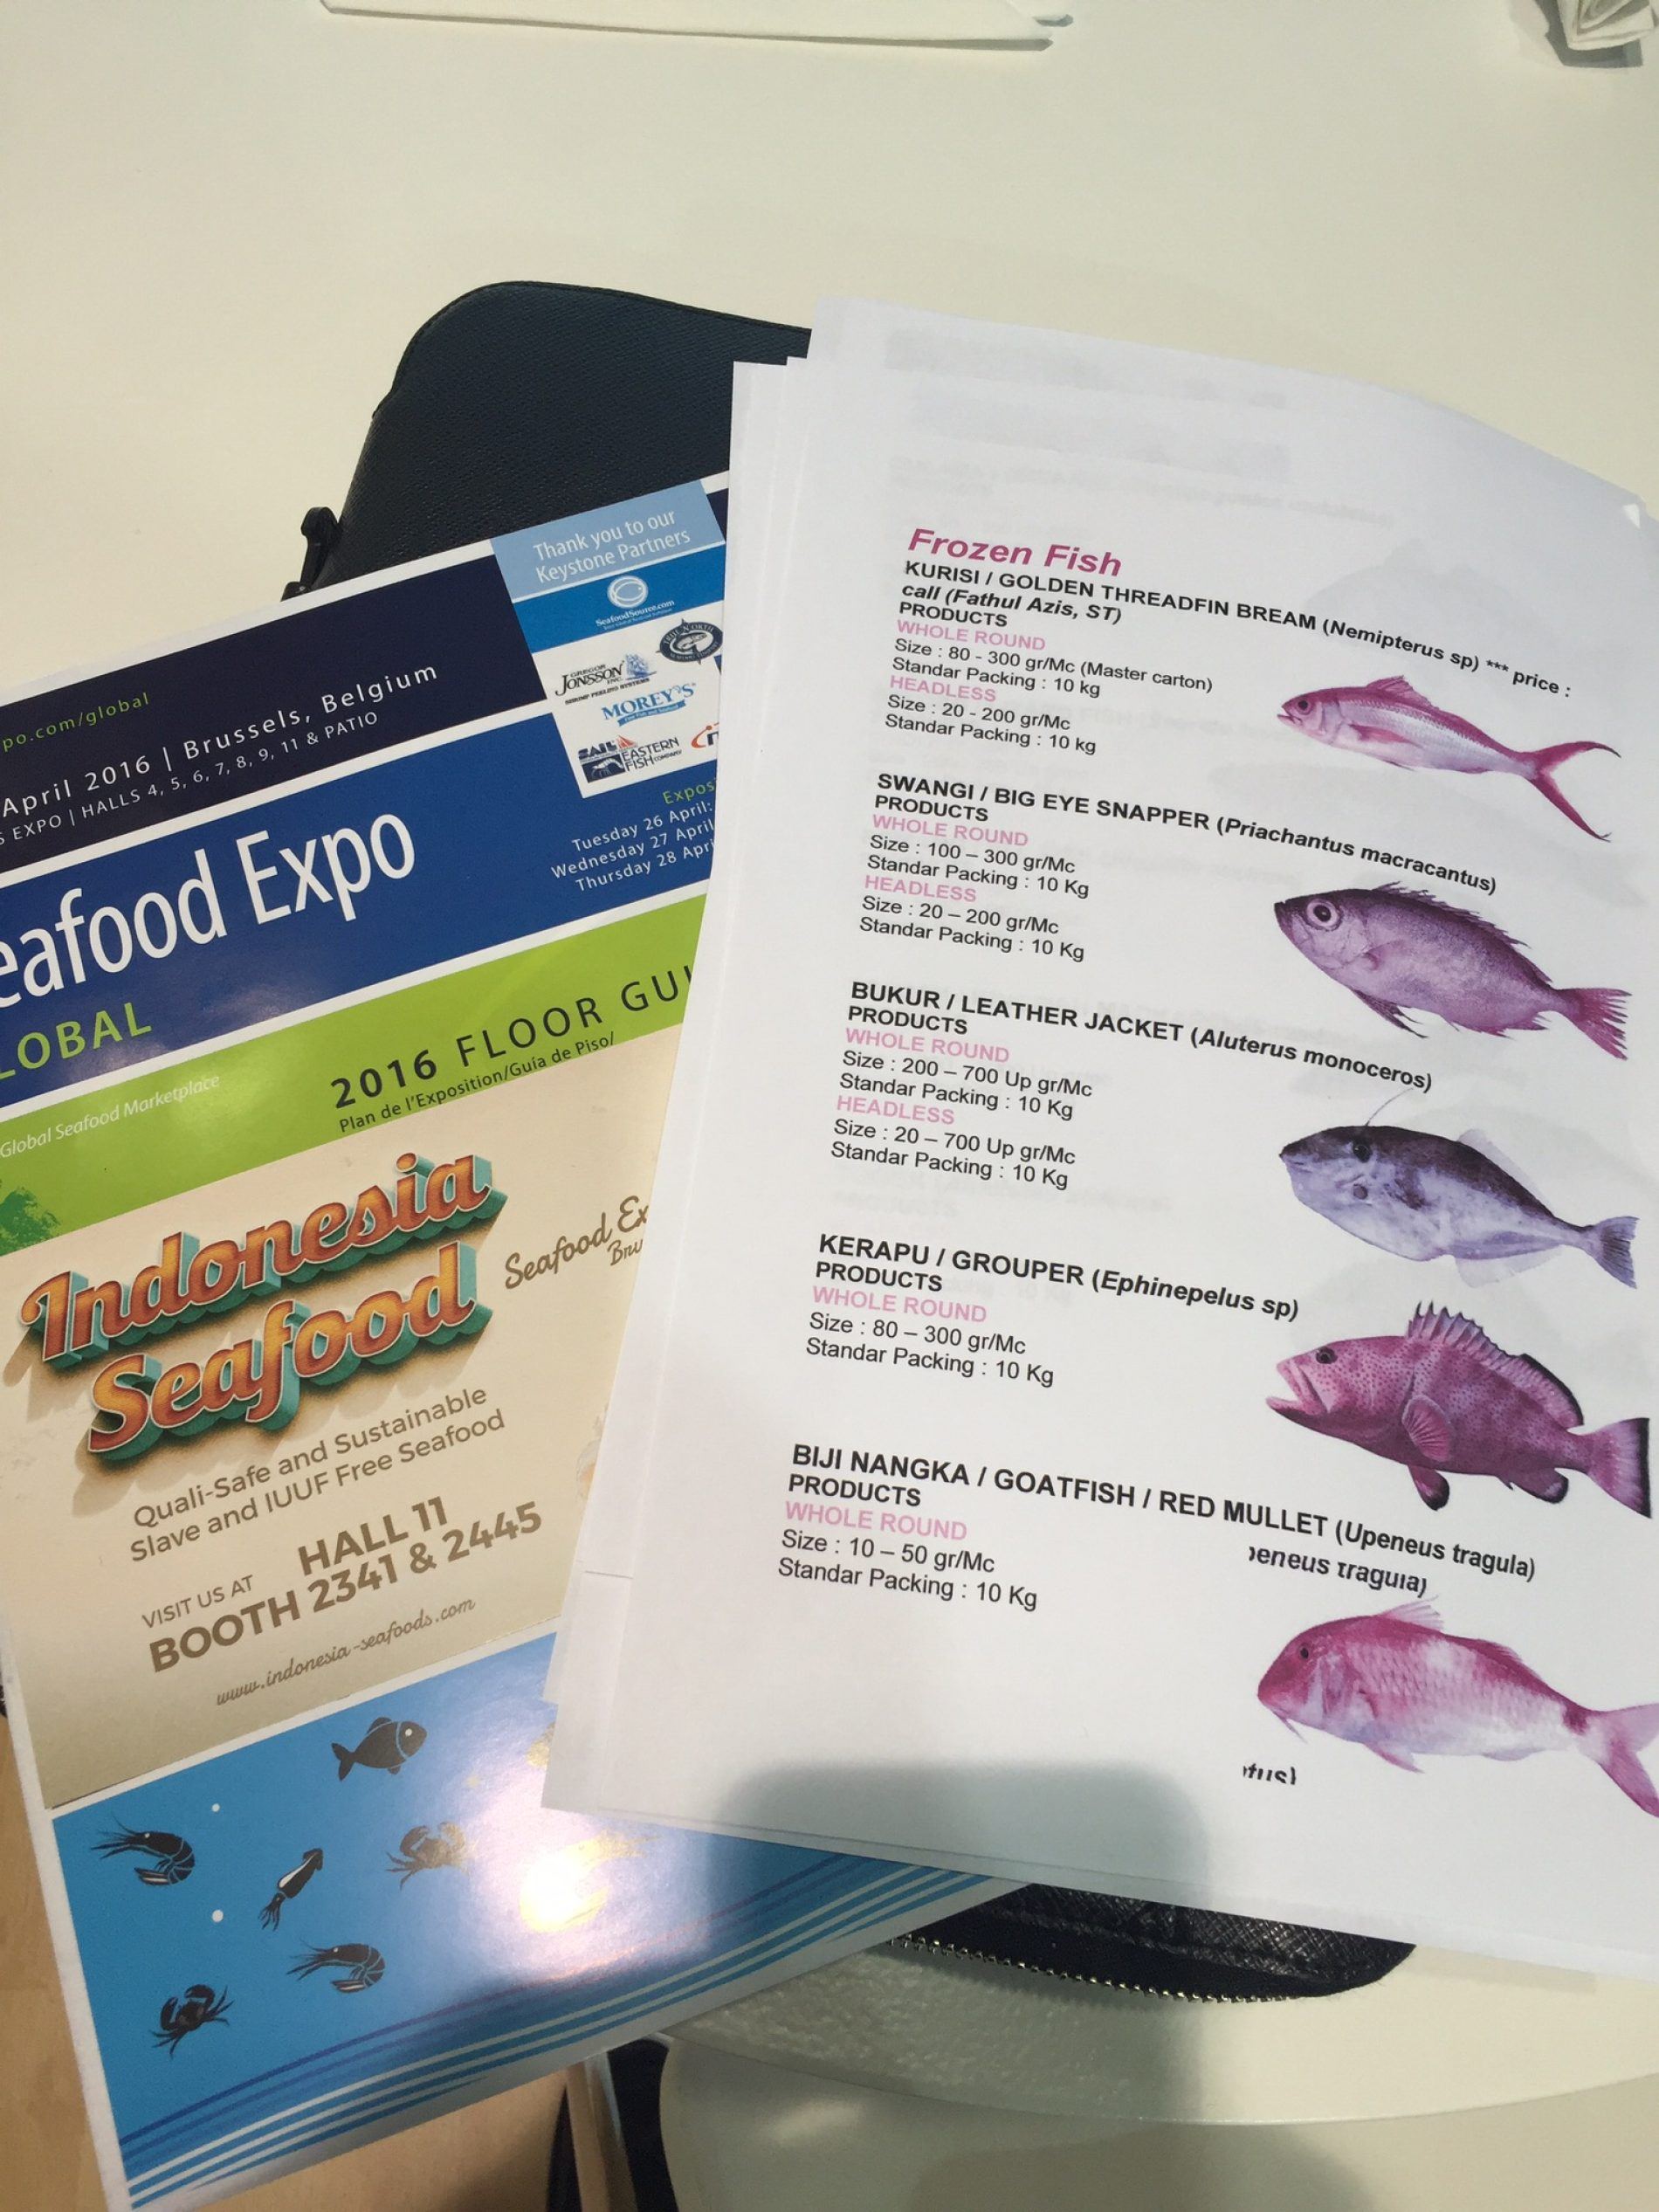 SEAFOOD EXPO 2016 – Brussels, Belgium